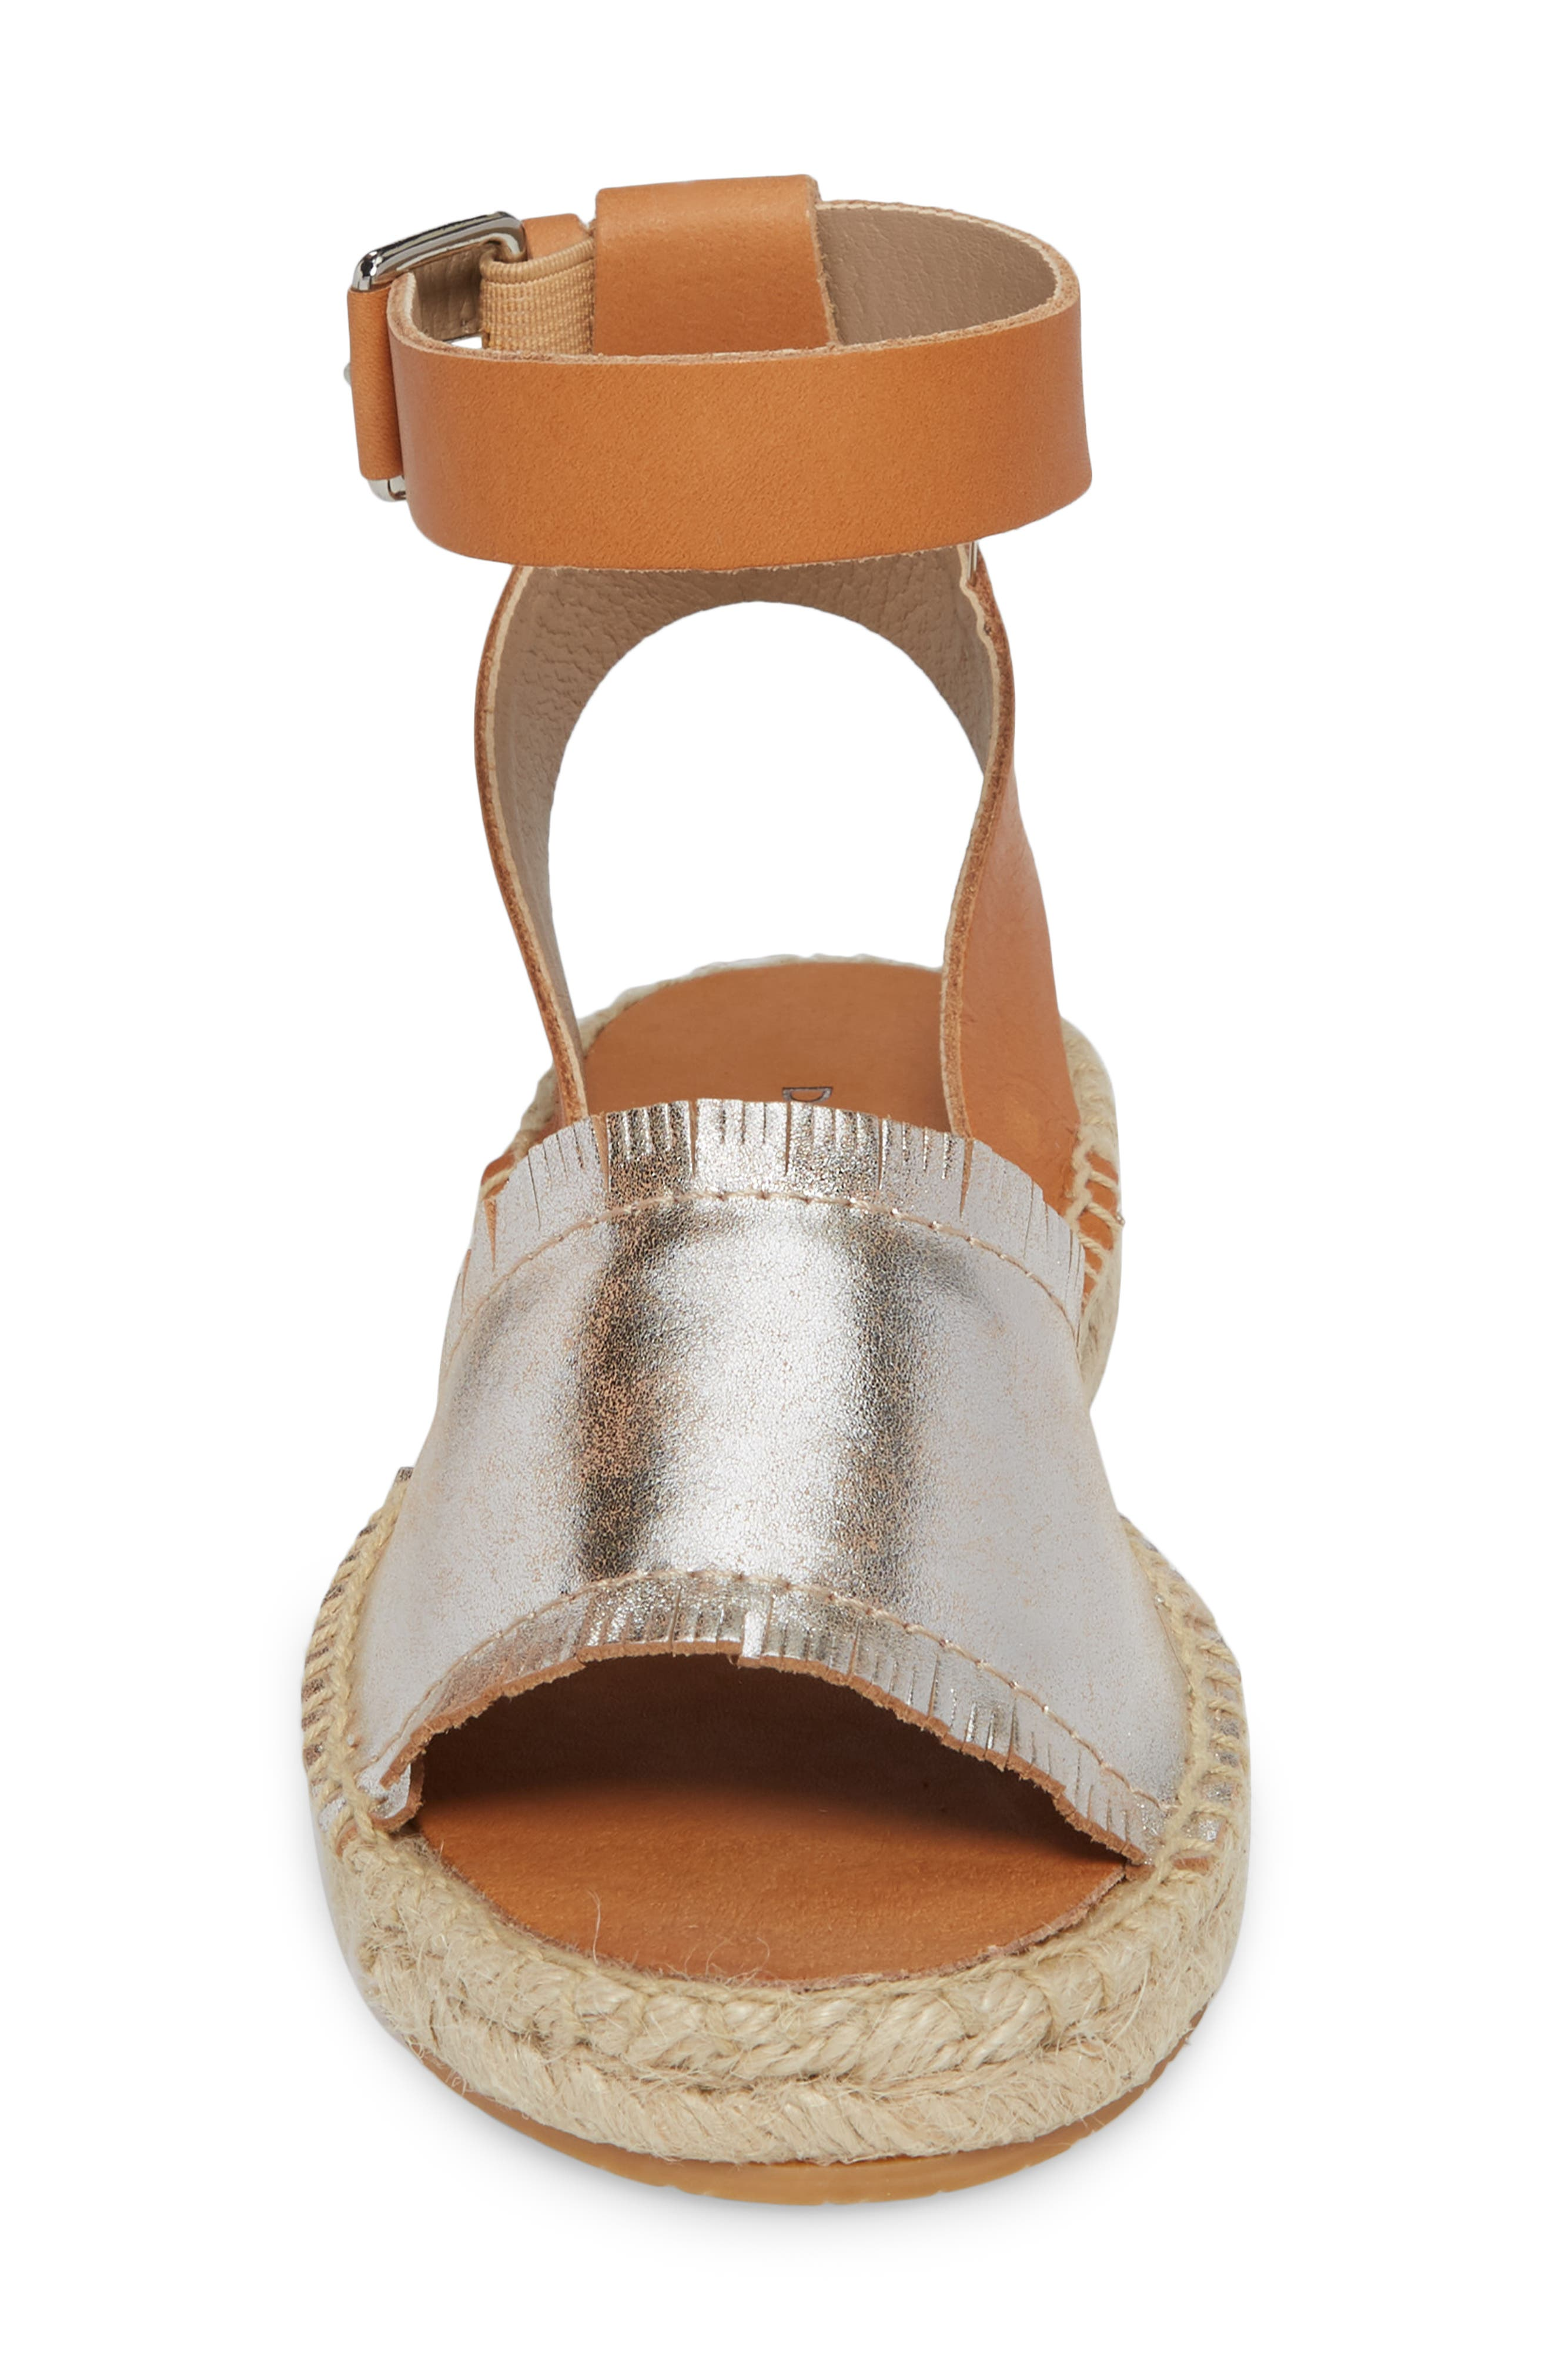 Rowen Espadrille Sandal,                             Alternate thumbnail 4, color,                             Silver Leather